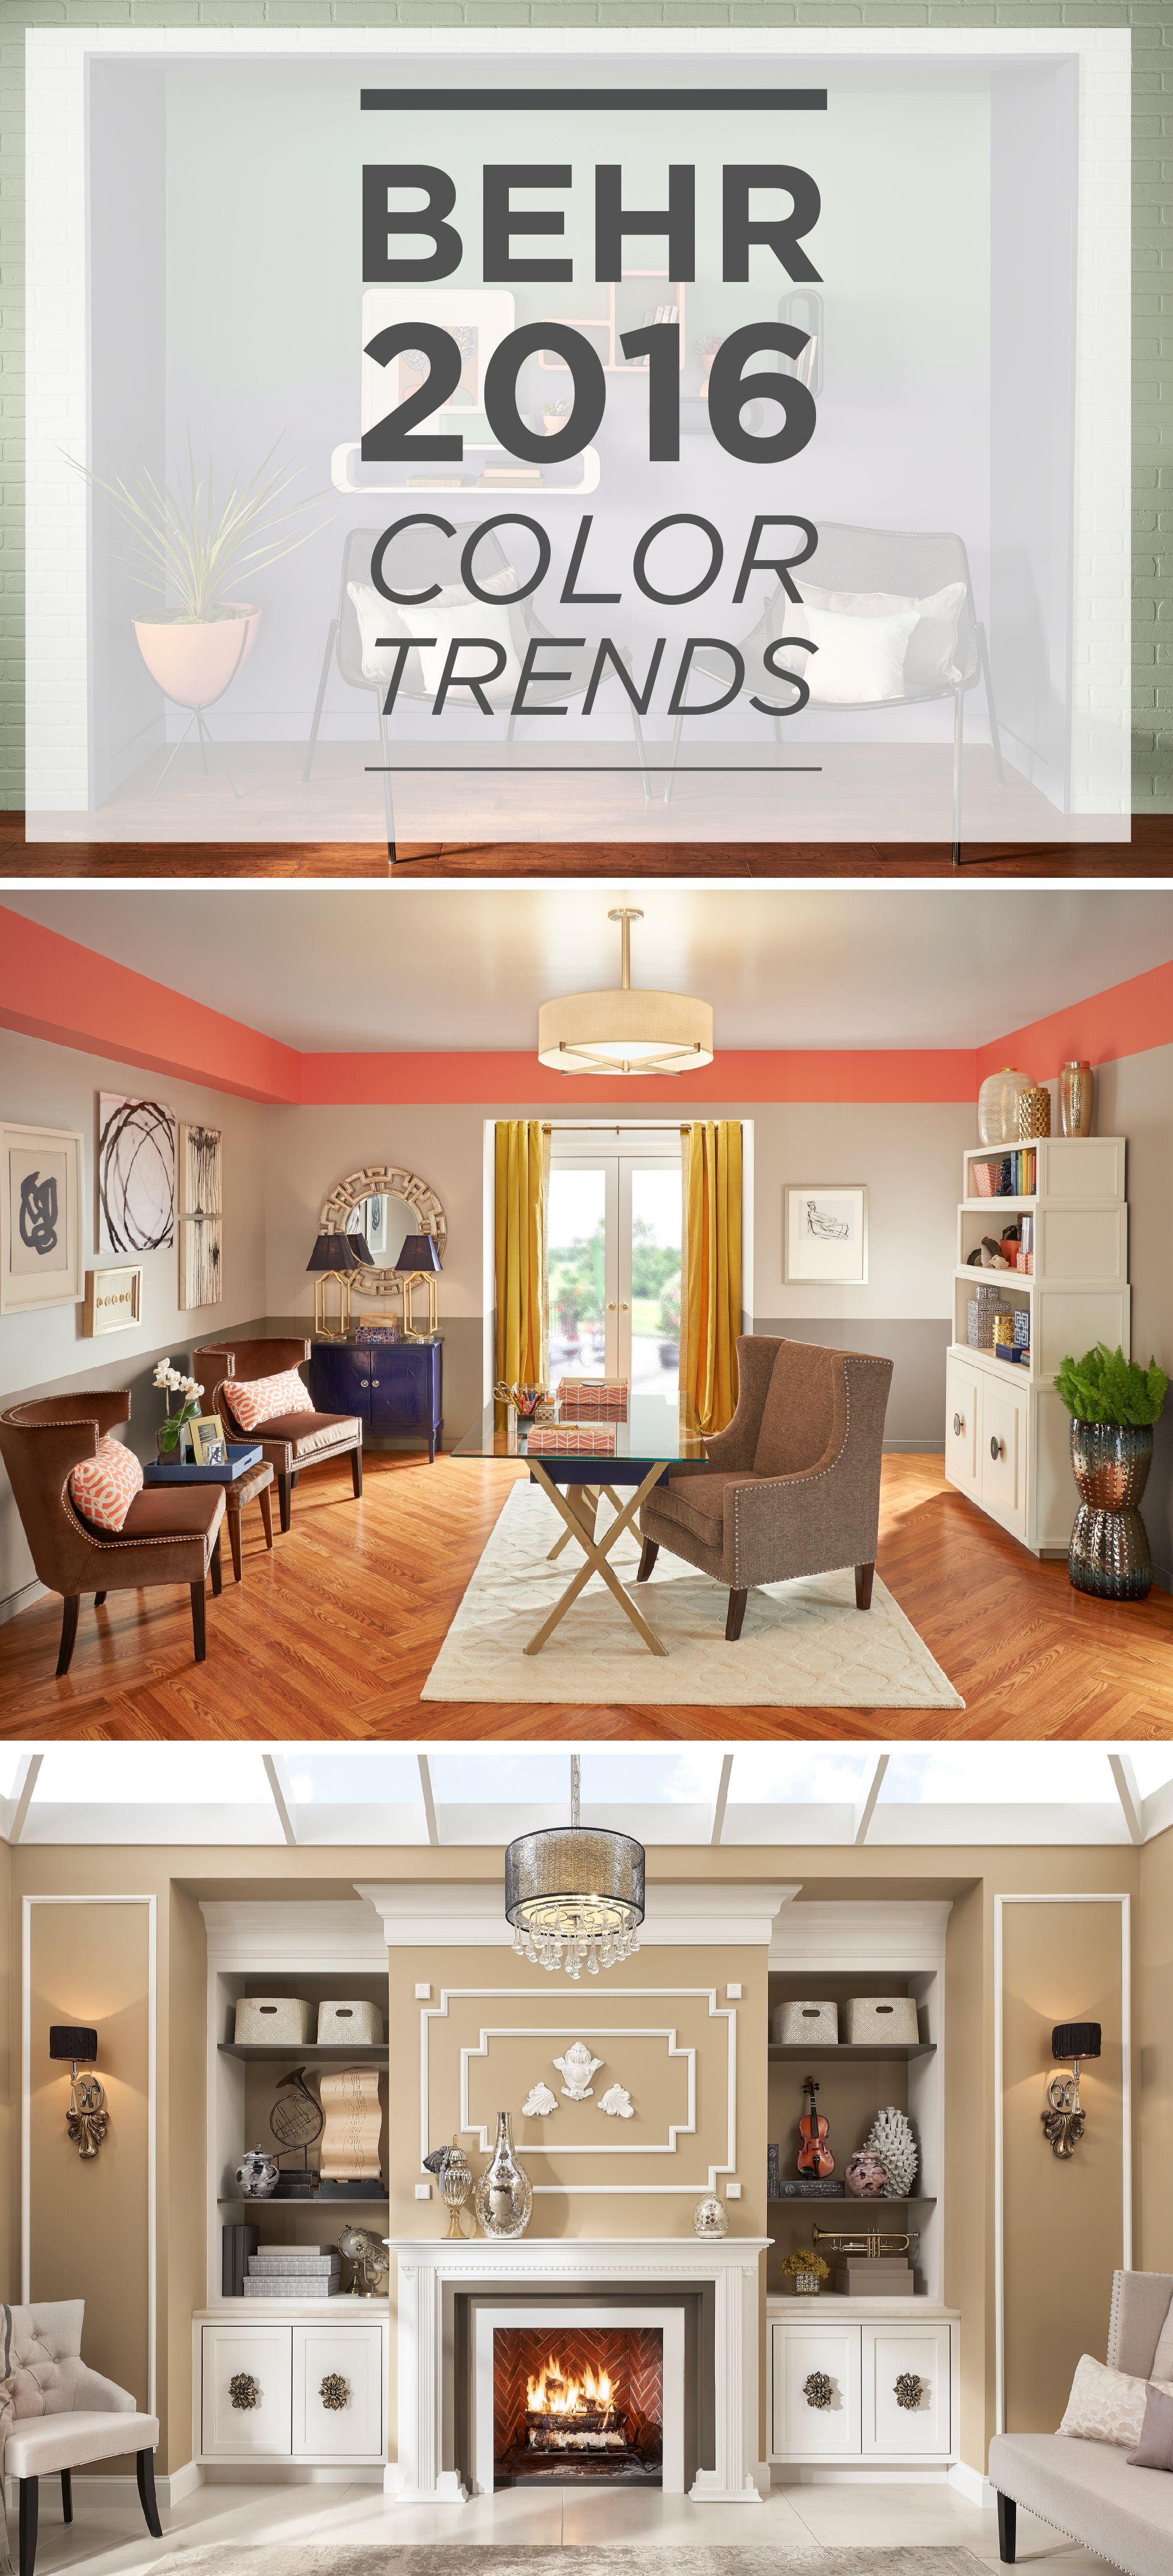 Featuring Behr Paint In Penthouse View, Coralette, Symphony Gold, And